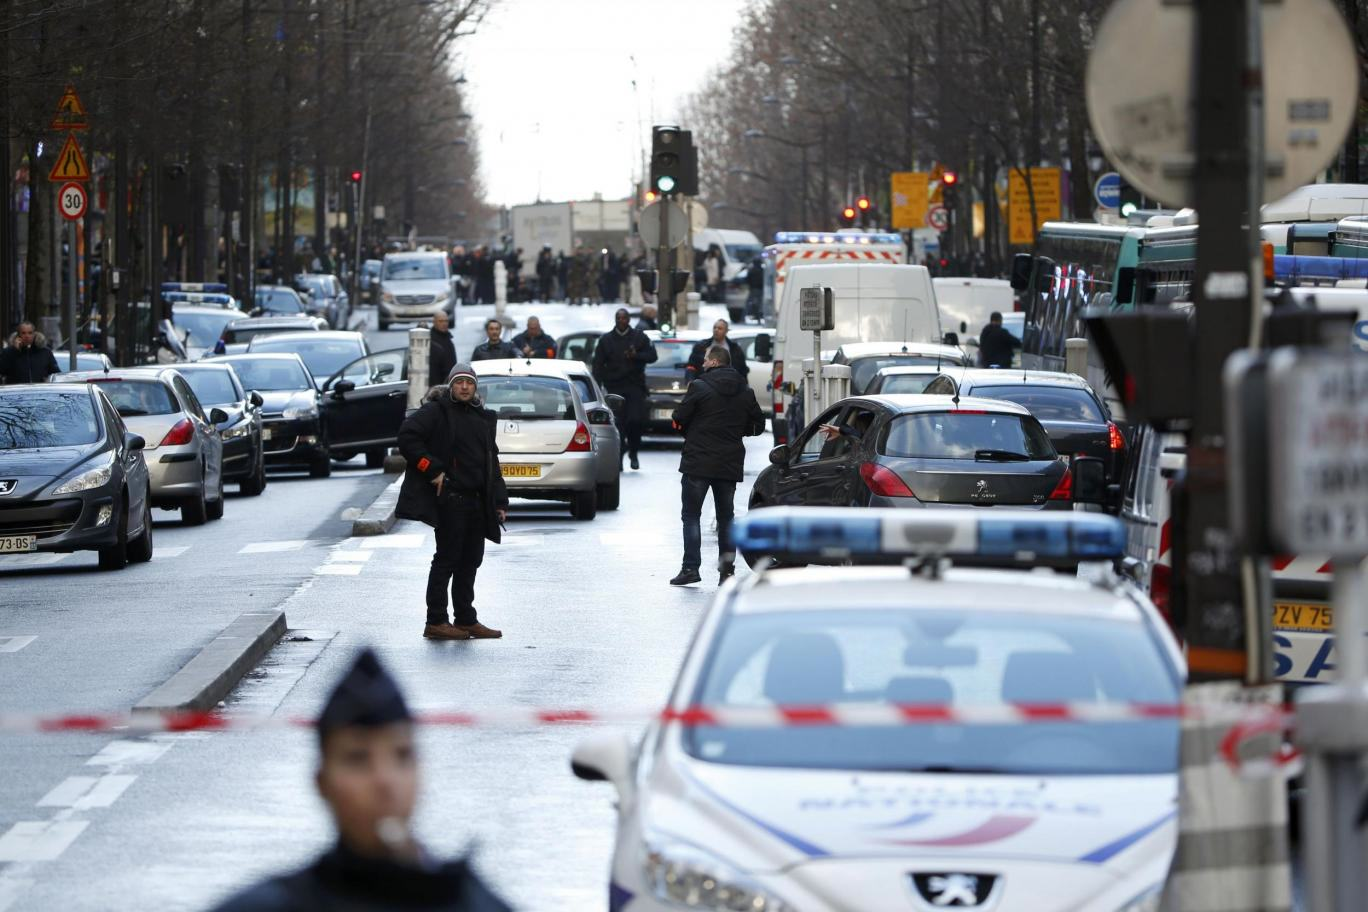 Paris french police Knife Wielding Man Wearing Suicide Belt Shot Dead Outside Paris Police Station